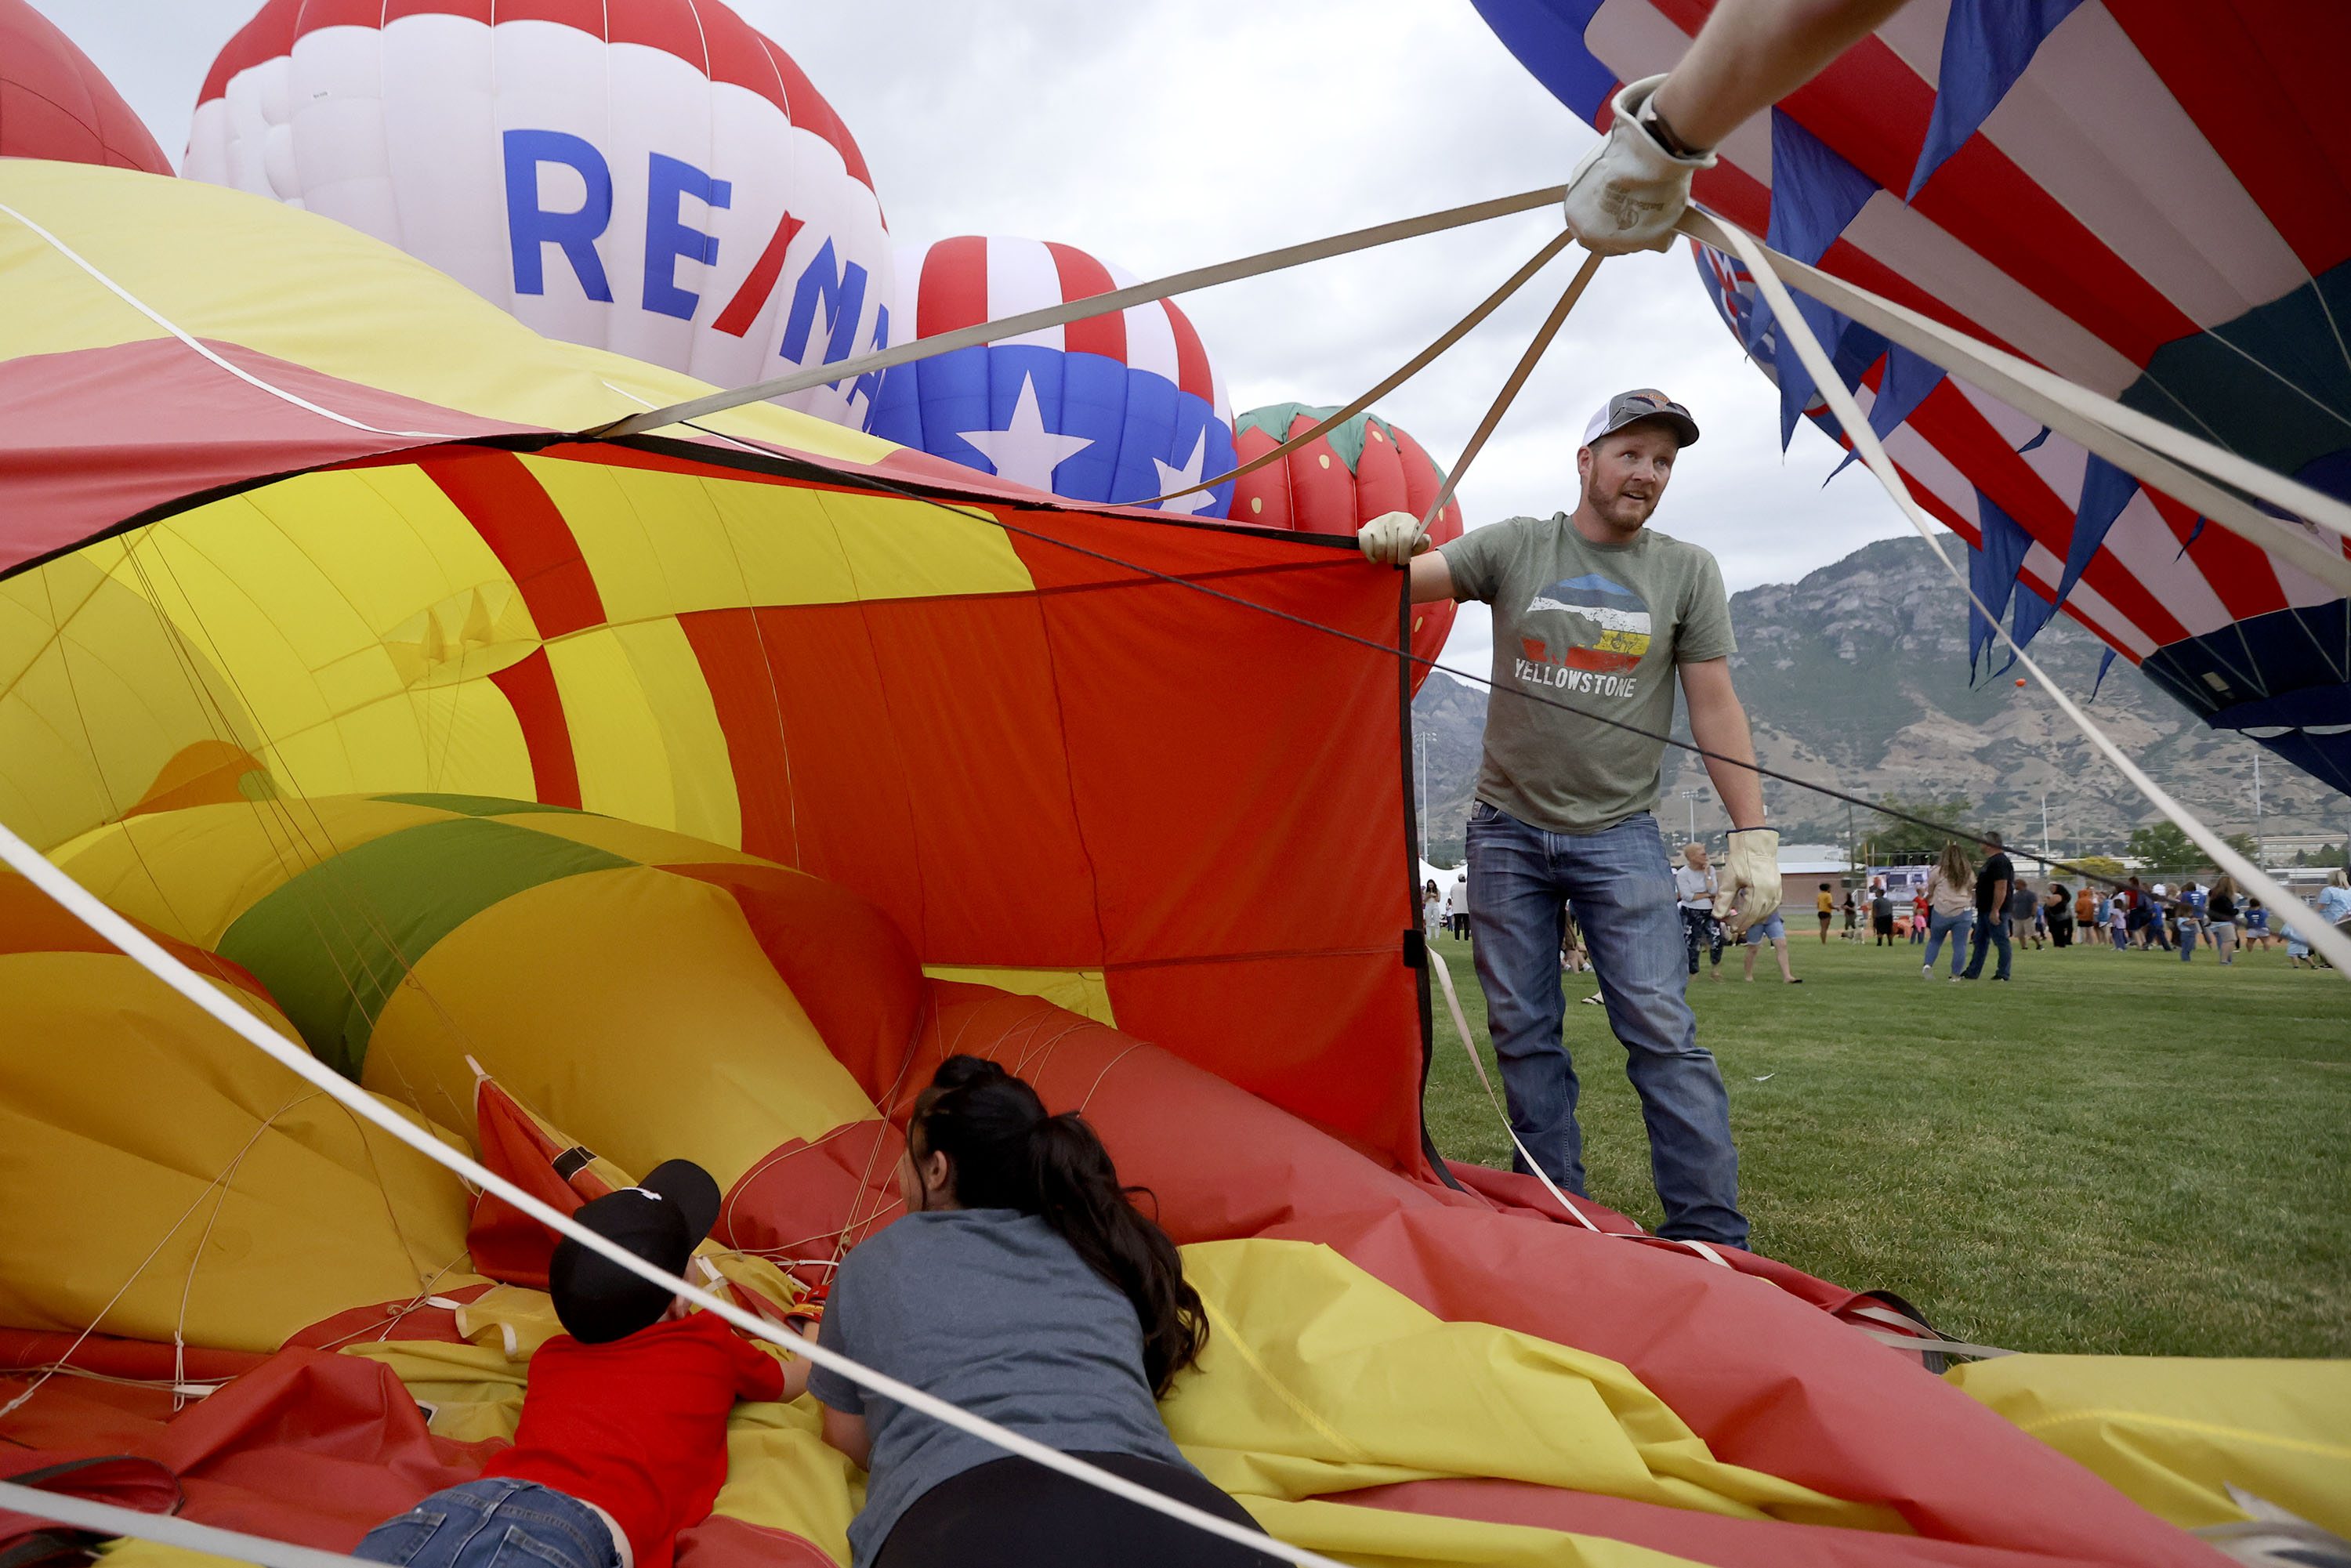 Mike Evans helps take down the Chili balloon as Cooper Johnson and Johnna Monforte weigh it down during Balloon Fest on Bulldog Field in Provo on Friday, July 2, 2021. The balloons could not fly due to weatherbut were inflated for display.